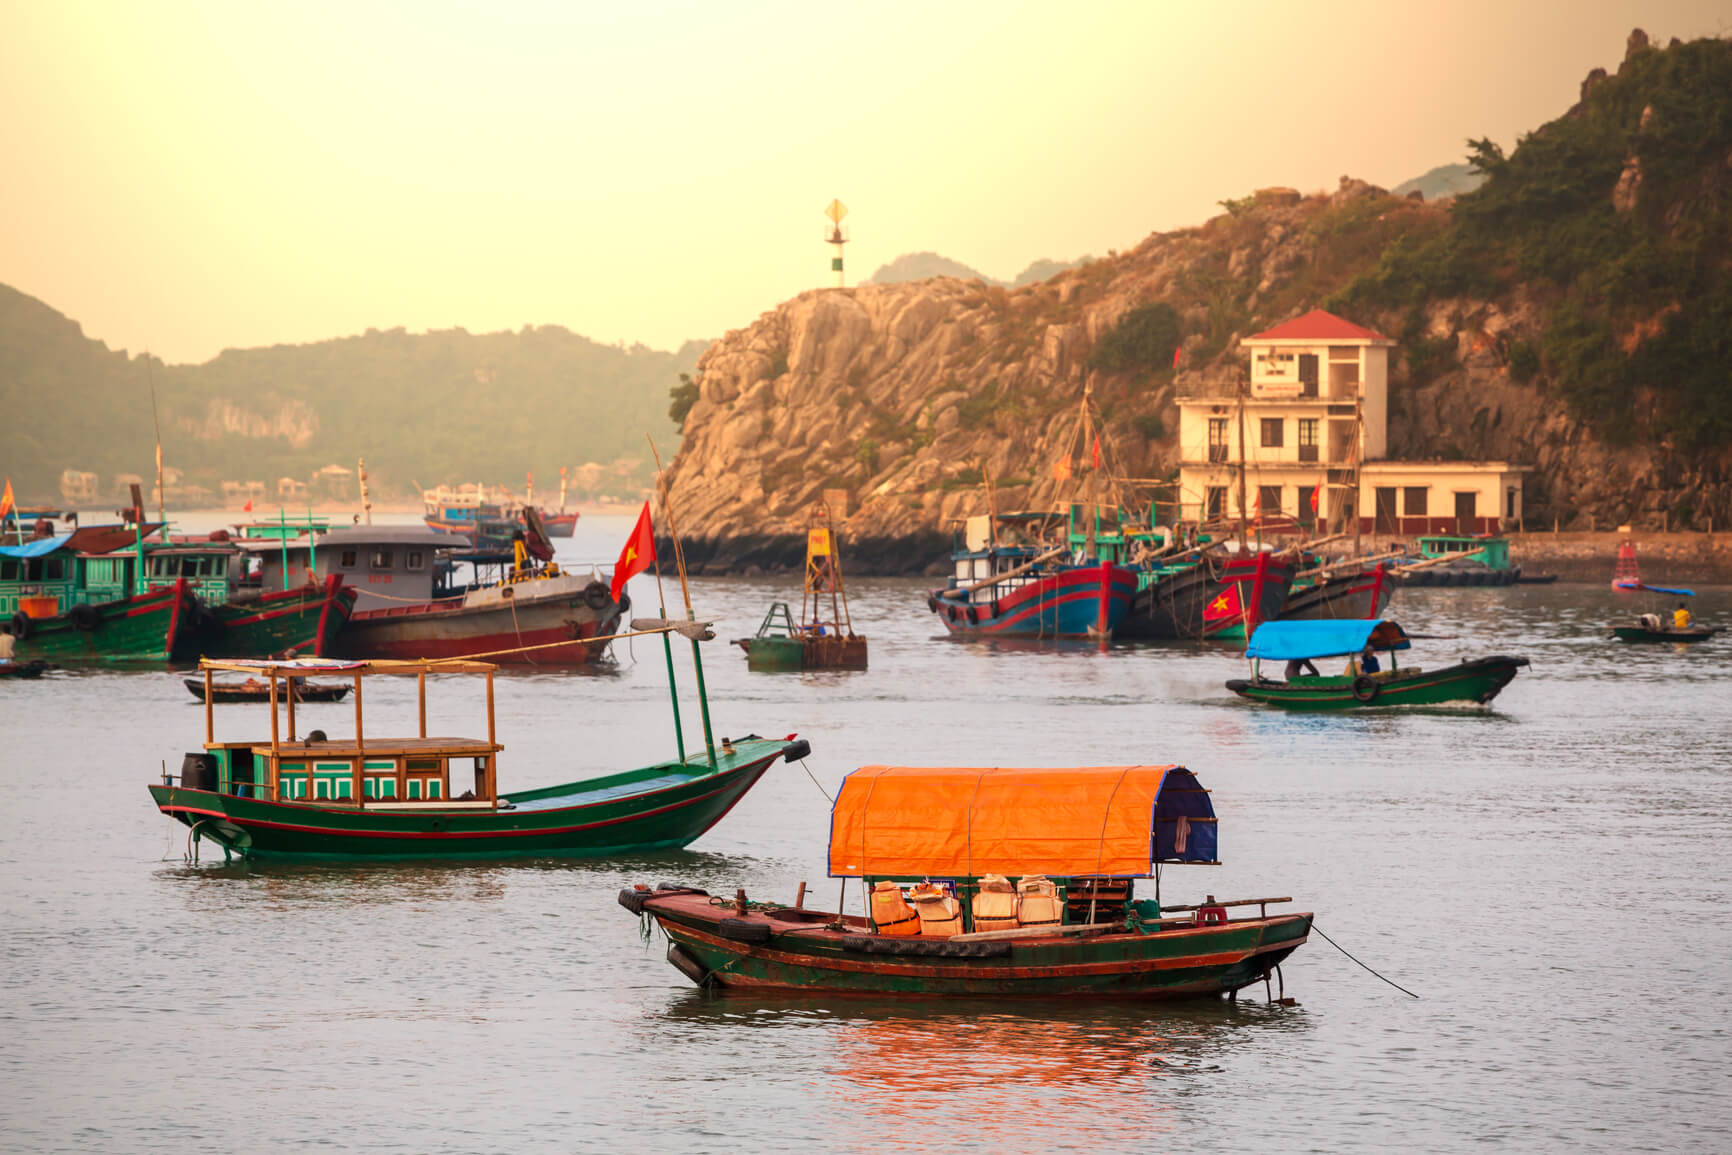 Oslo, Norway to Ho Chi Minh City, Vietnam for only €351 roundtrip (Jan-Jun dates)